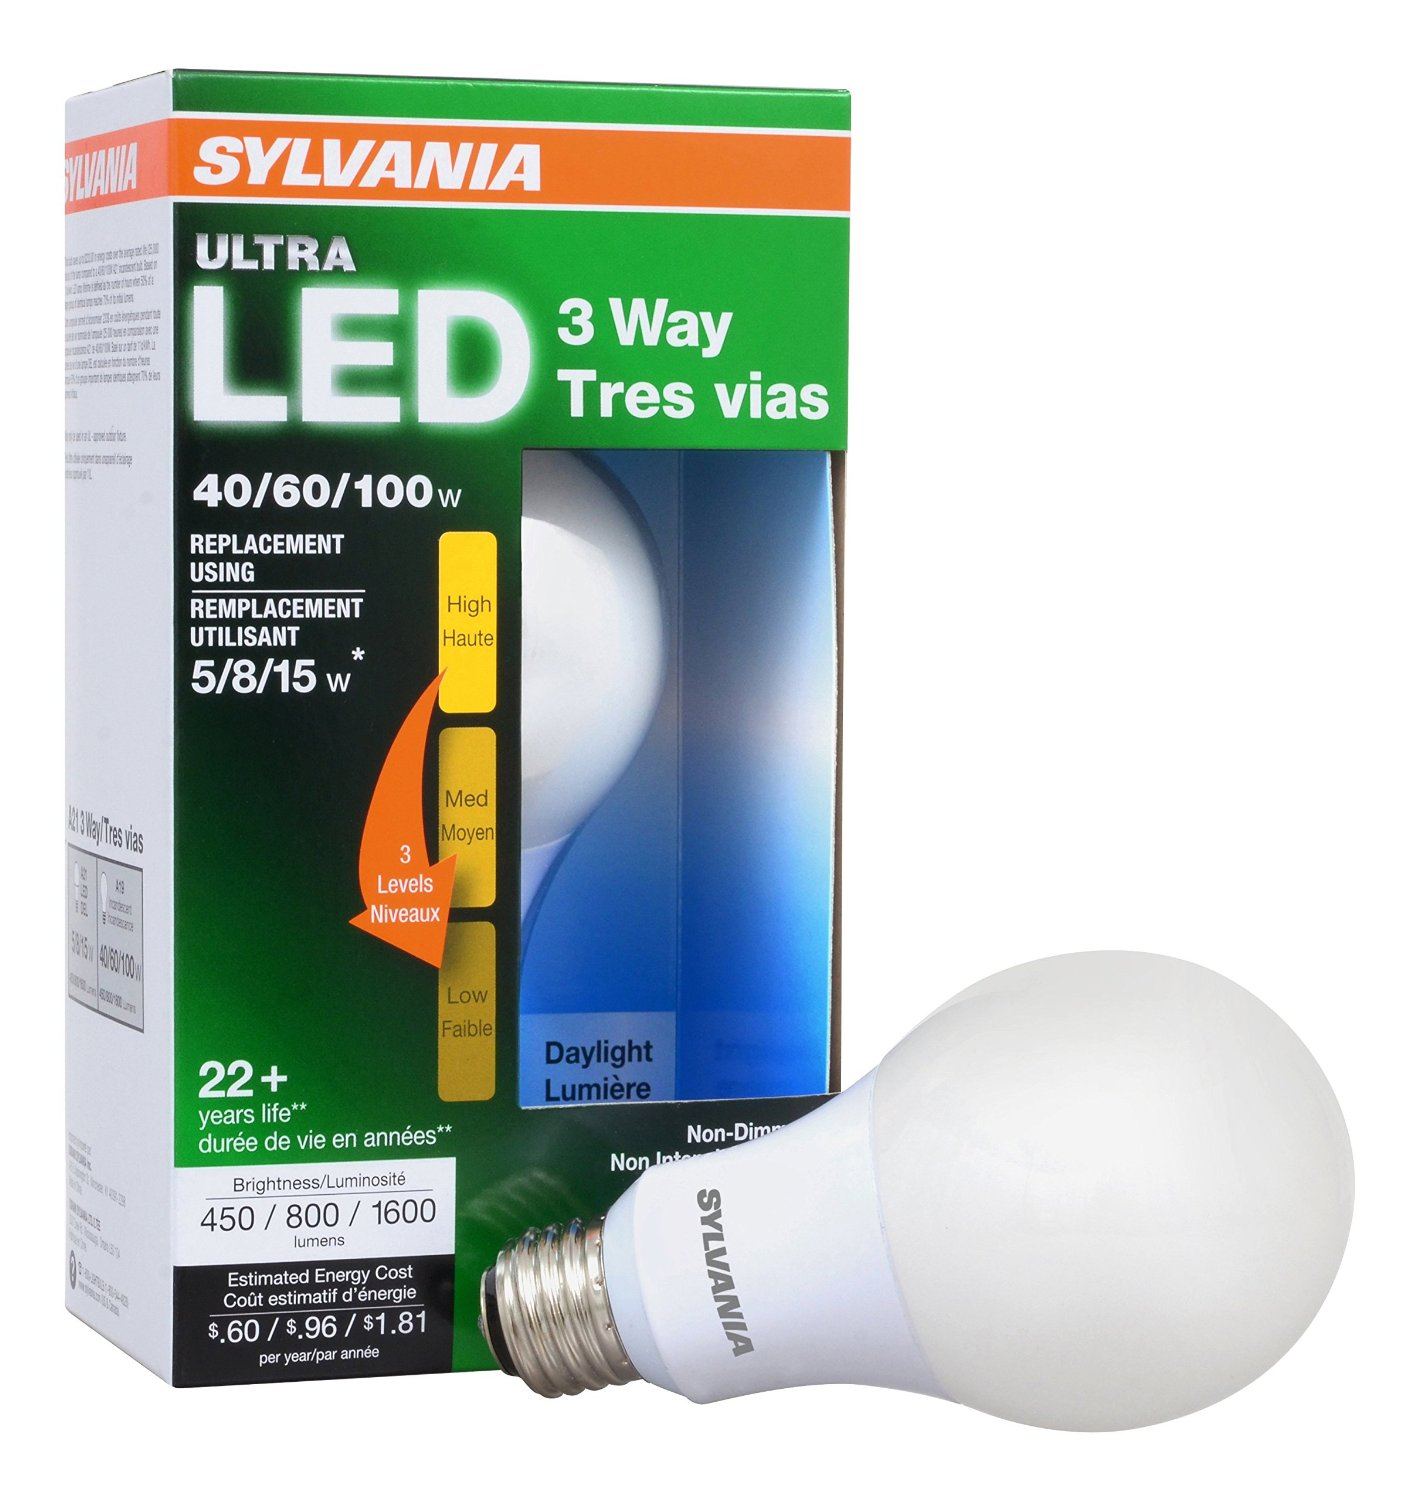 SYLVANIA ULTRA 3-WAY LED Light Bulb 40/60/100W Replacement, Daylight 5000K, 25,000 hour life - A21, Medium Base, 74086 - Energy Star (4.5/8.5/15W)